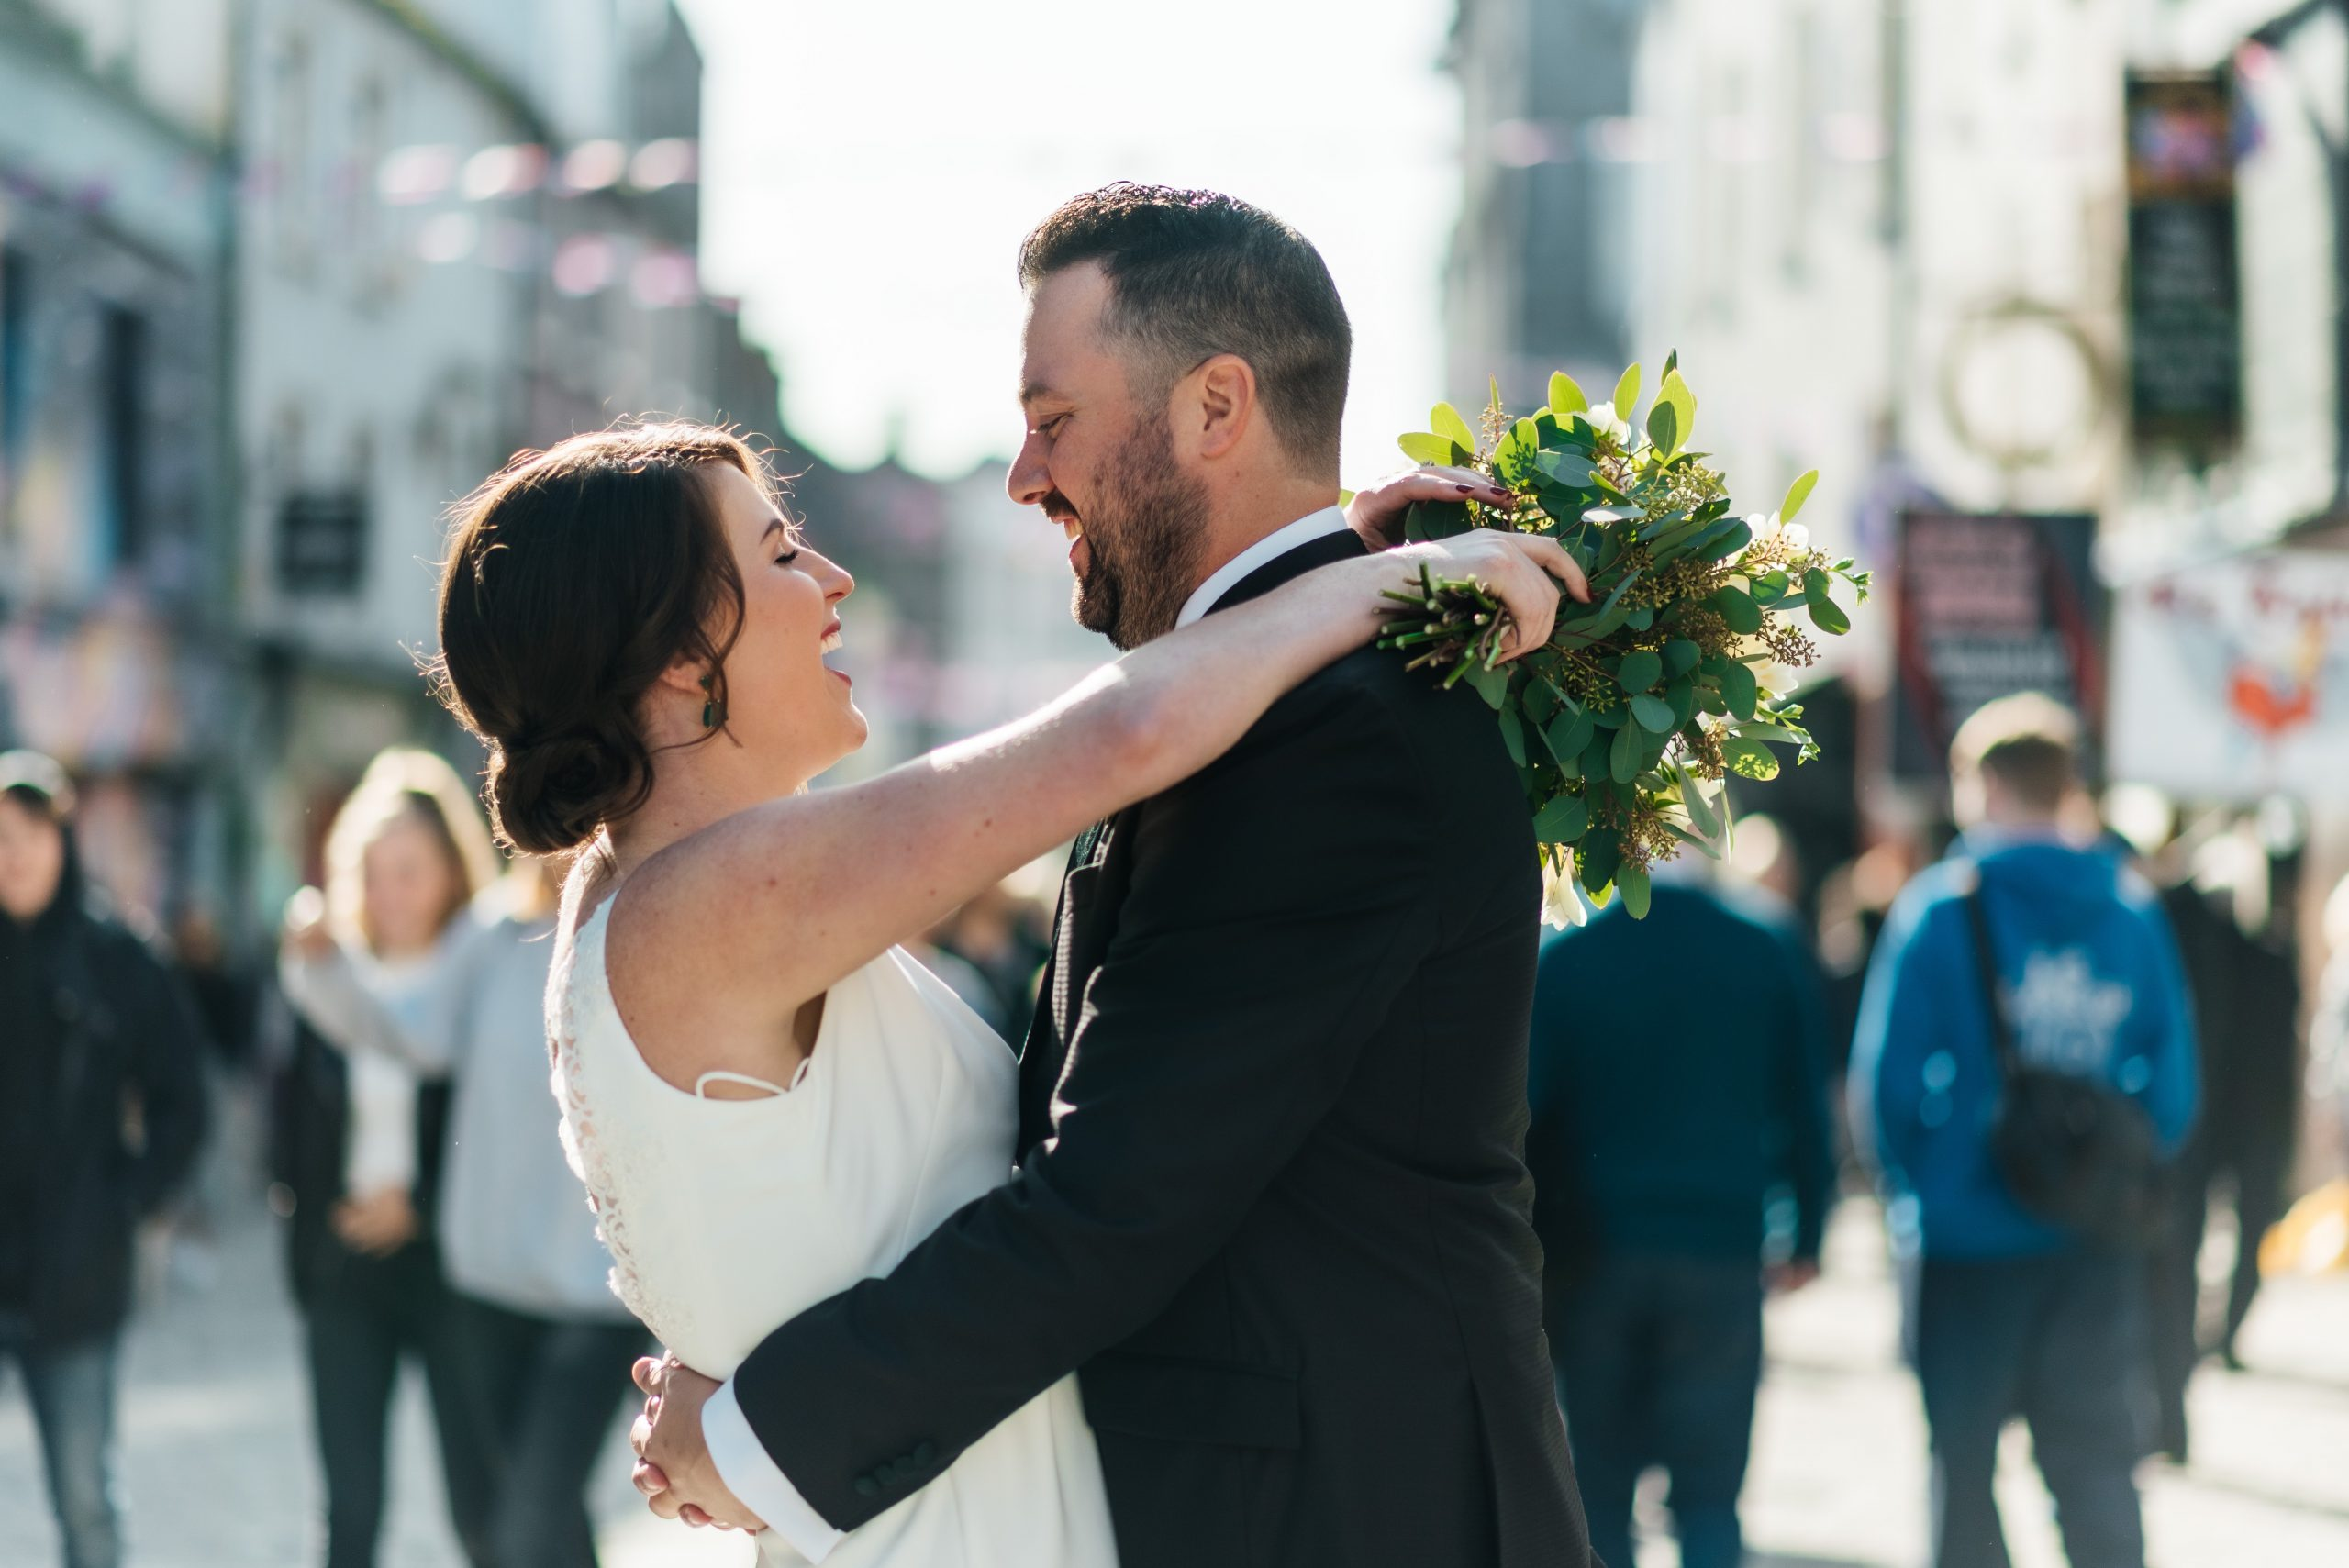 Bride & Groom during the Photoshoot on the streets of Galway City